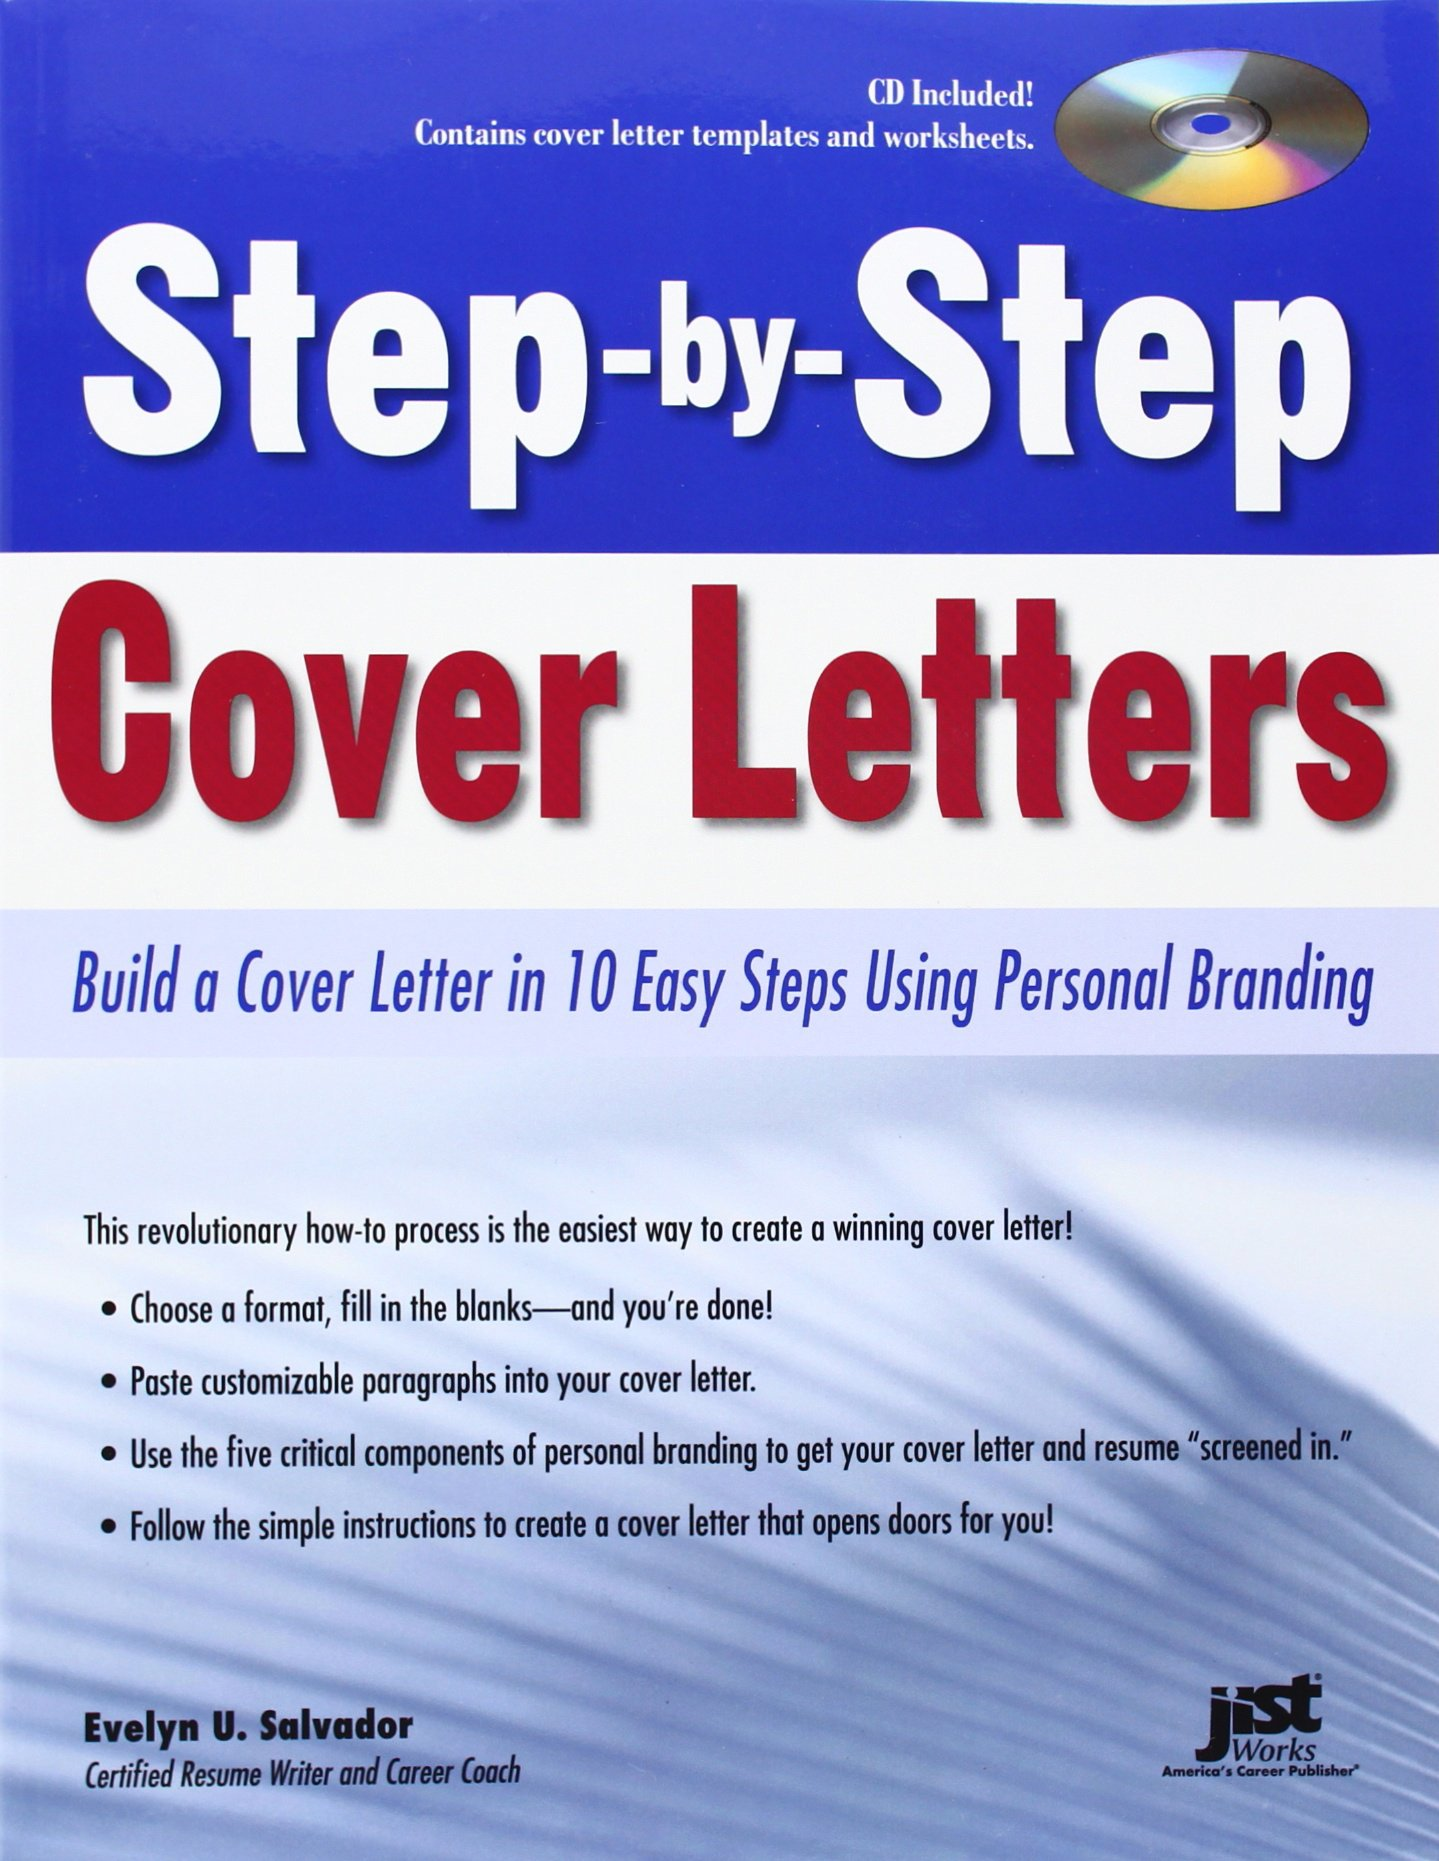 step by step cover letters build a cover letter in 10 easy steps using personal branding evelyn u salvador 9781593577803 amazoncom books - Build A Cover Letter